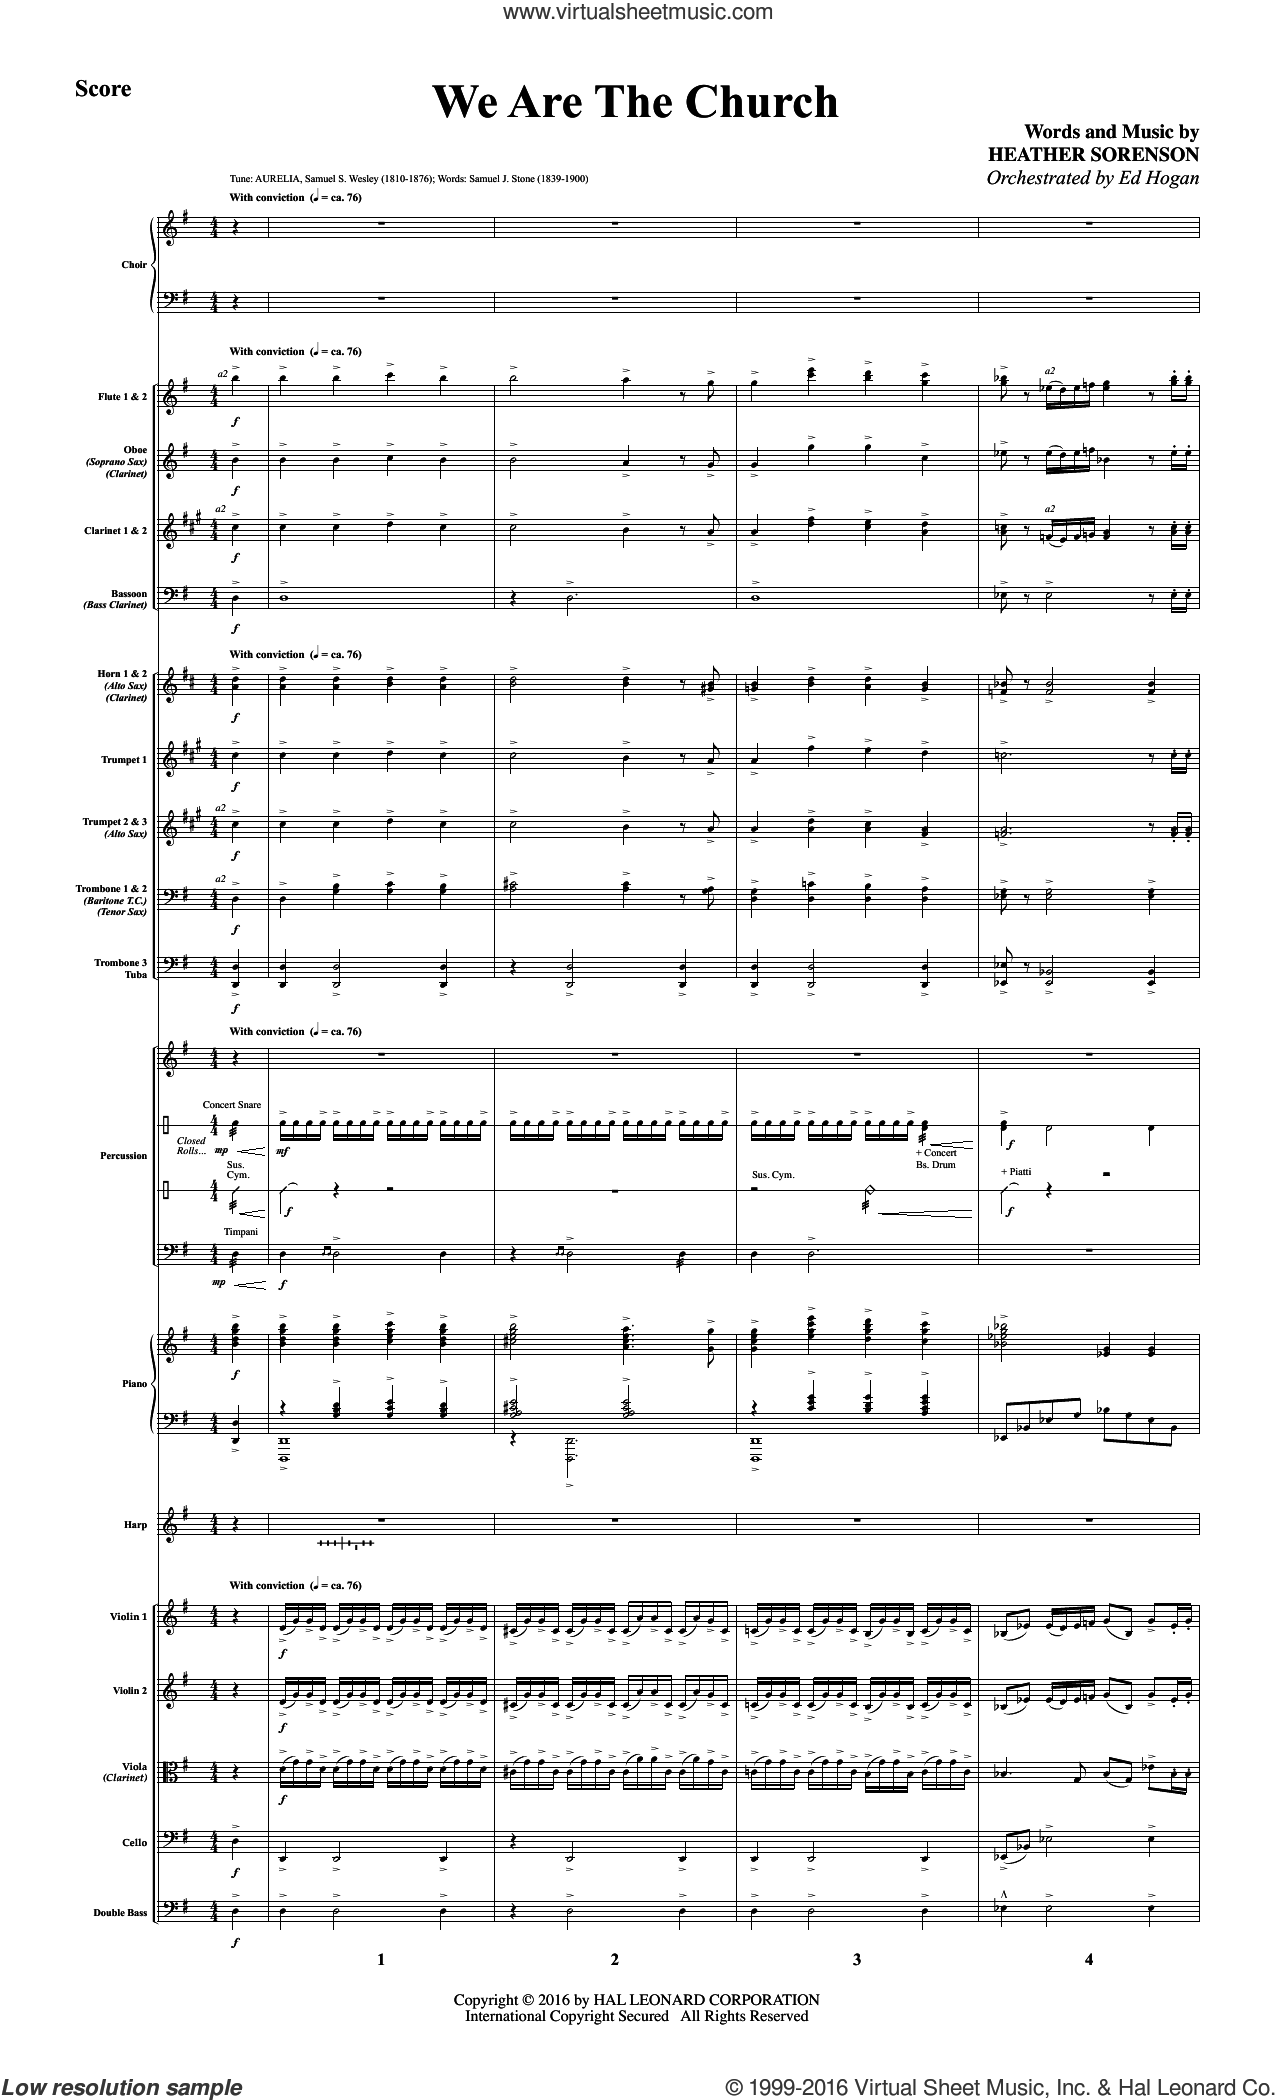 We Are the Church (COMPLETE) sheet music for orchestra by Heather Sorenson